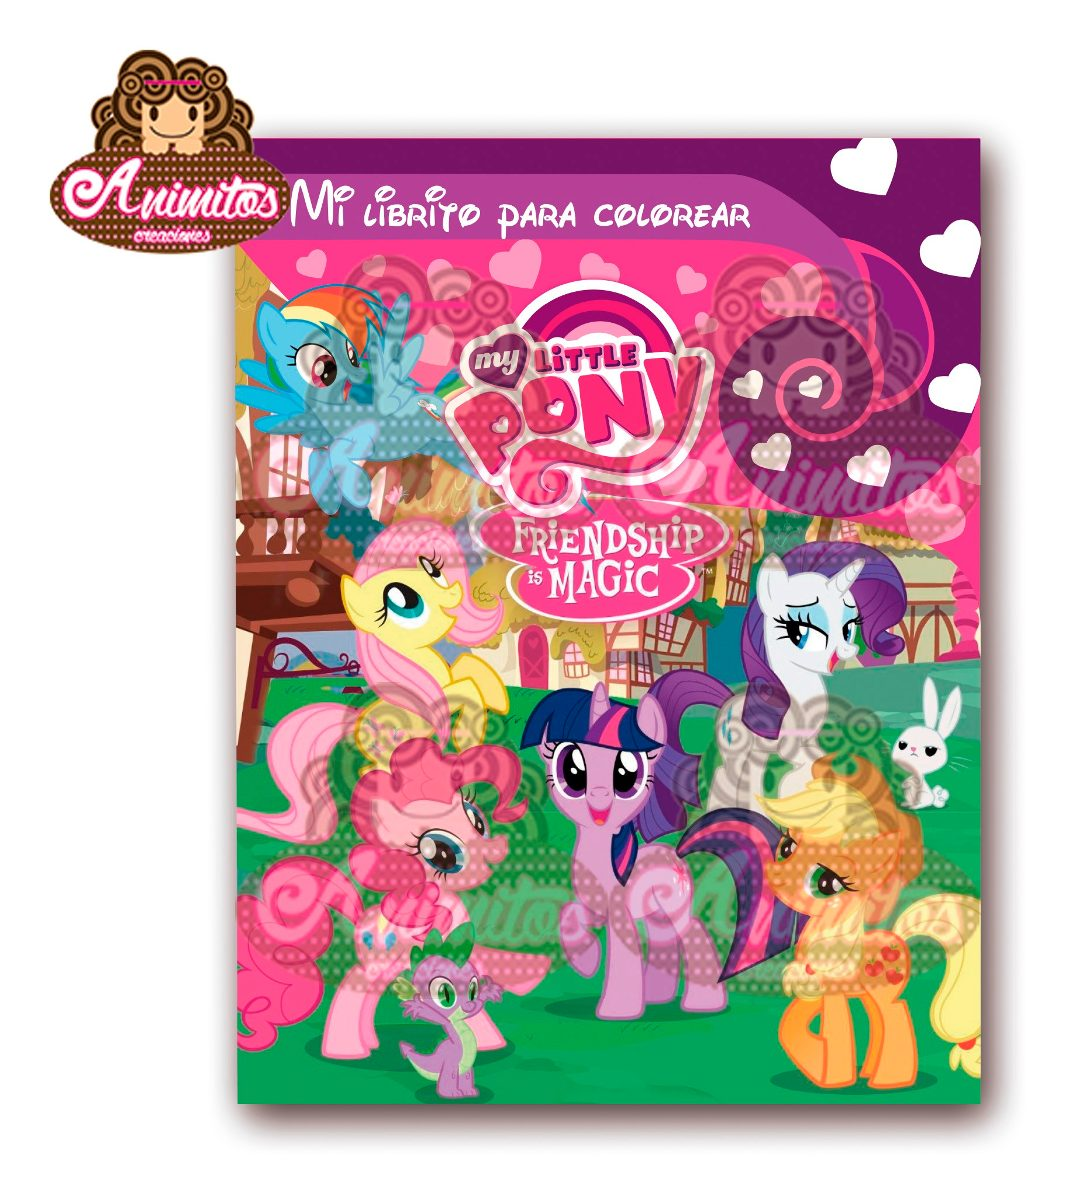 Mini Libros Para Colorear De My Little Pony Para Cotillon - Bs ...